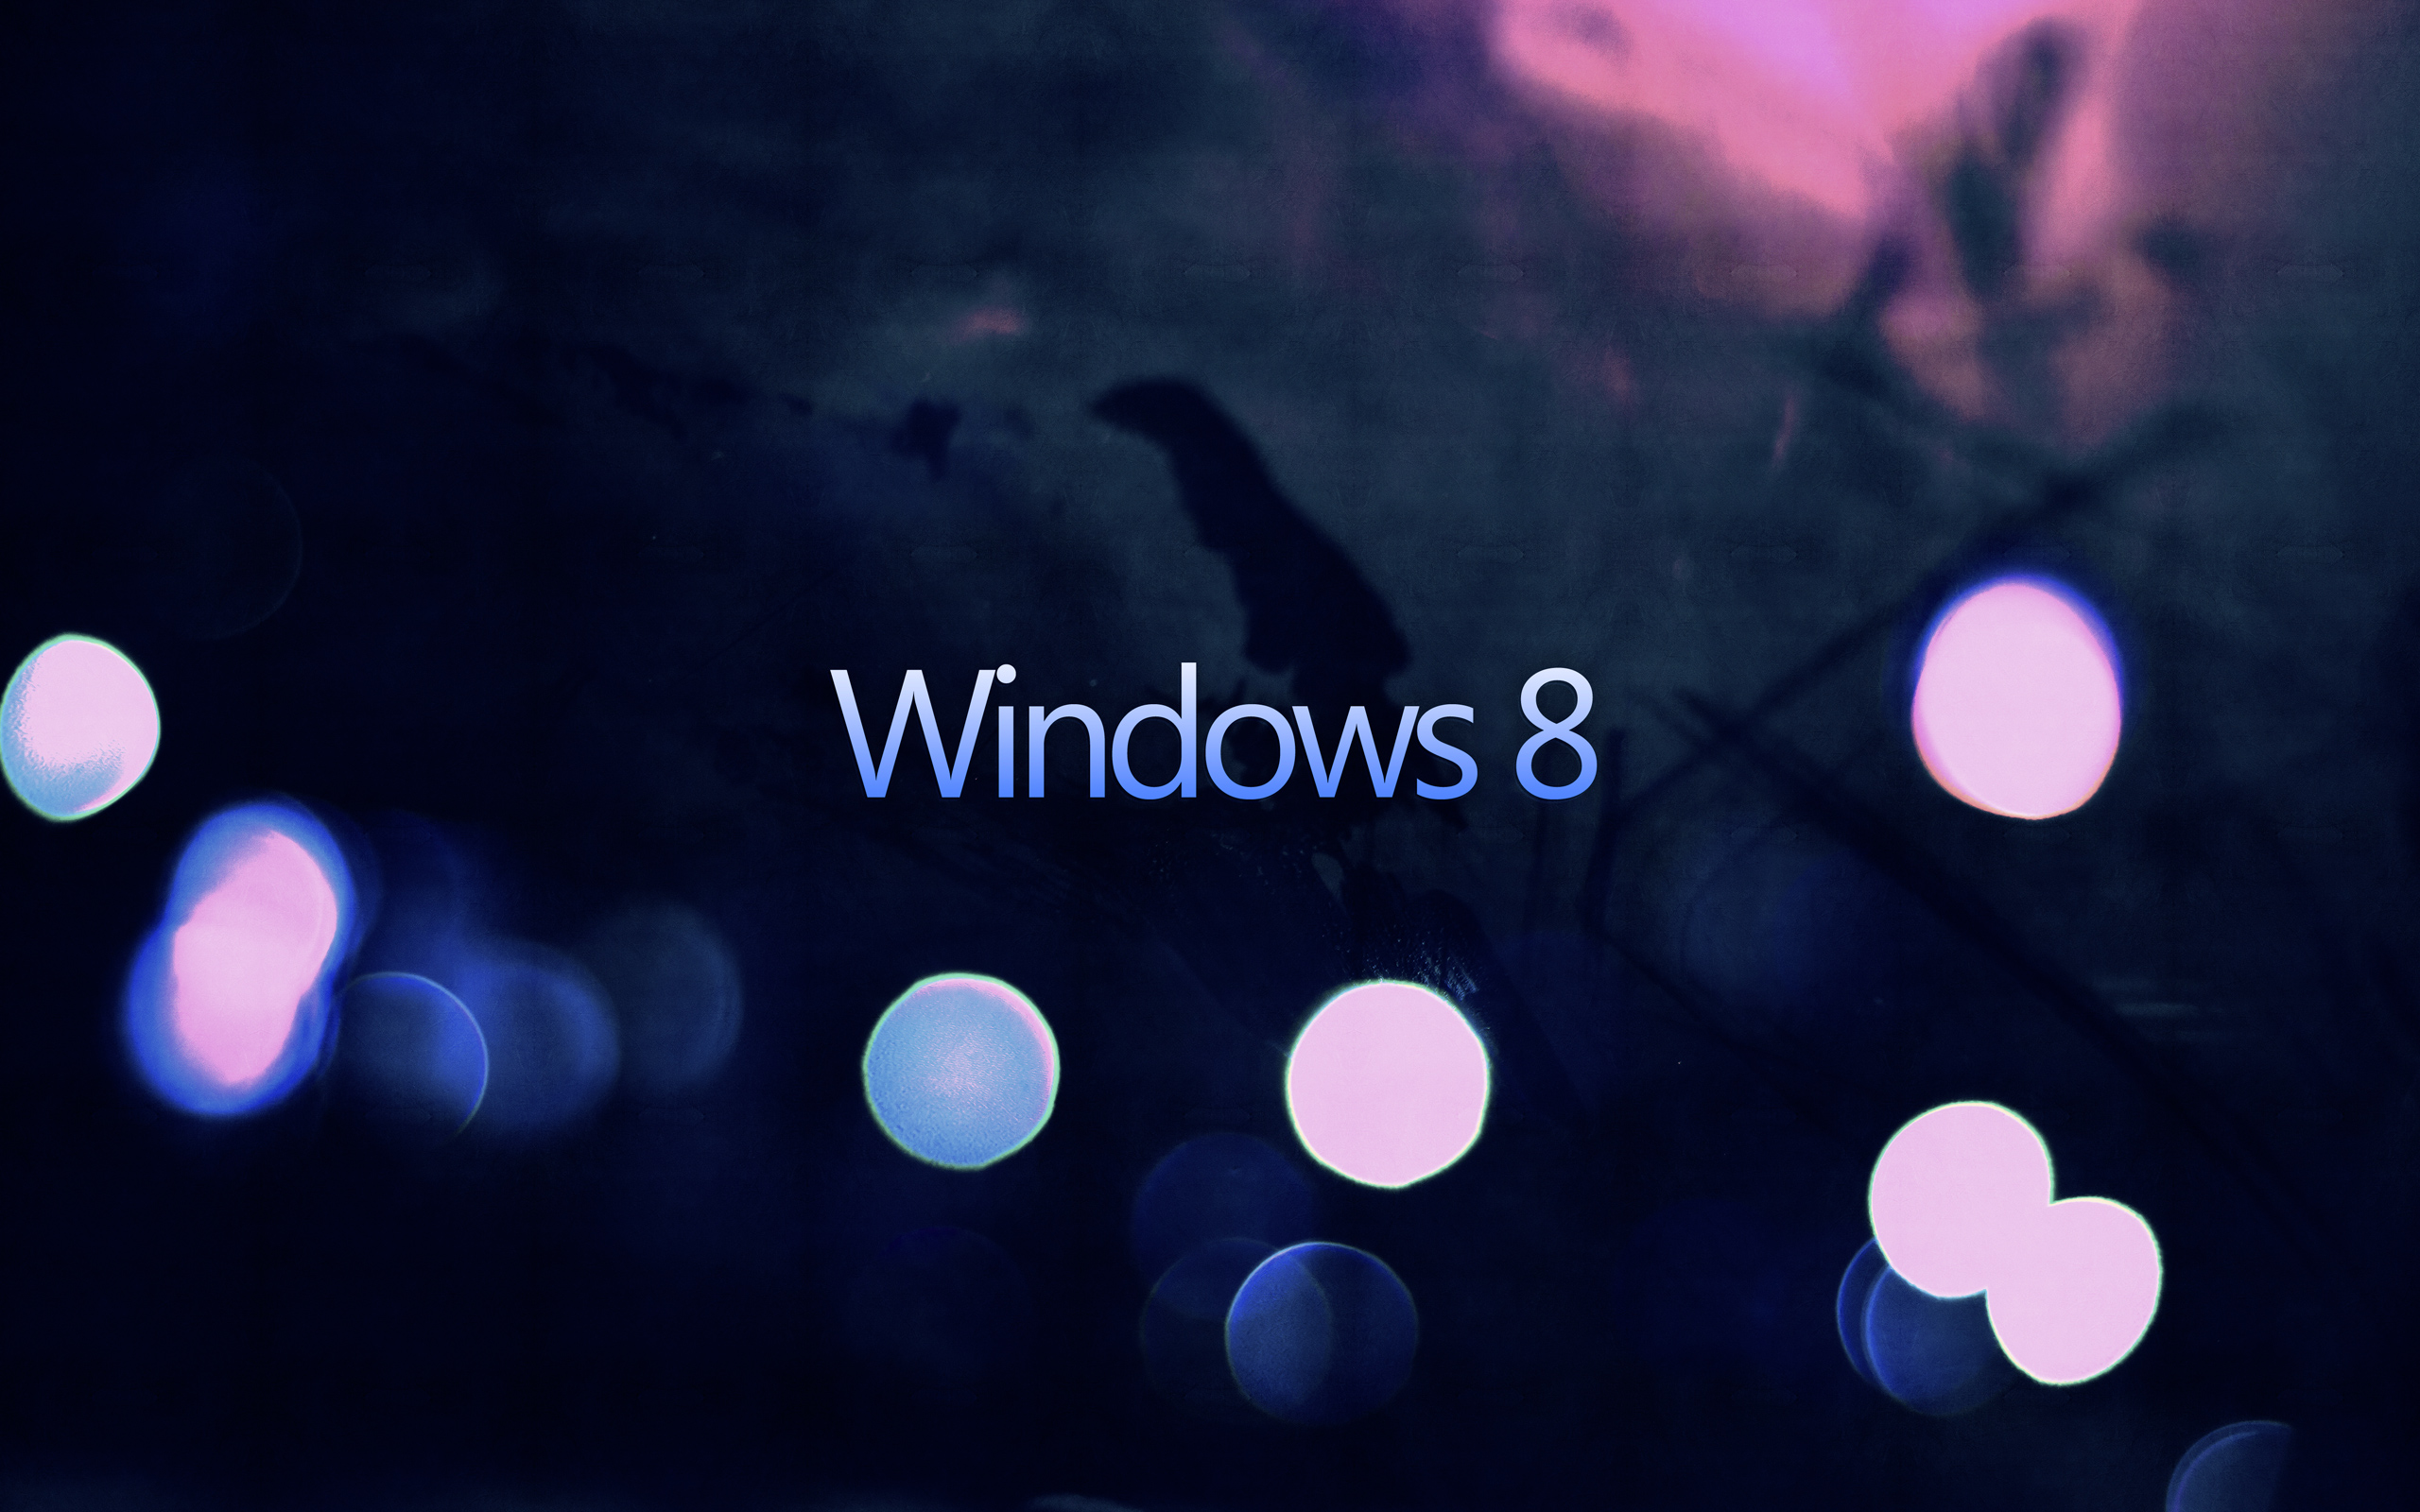 Windows 8 HD Wallpaper Purple